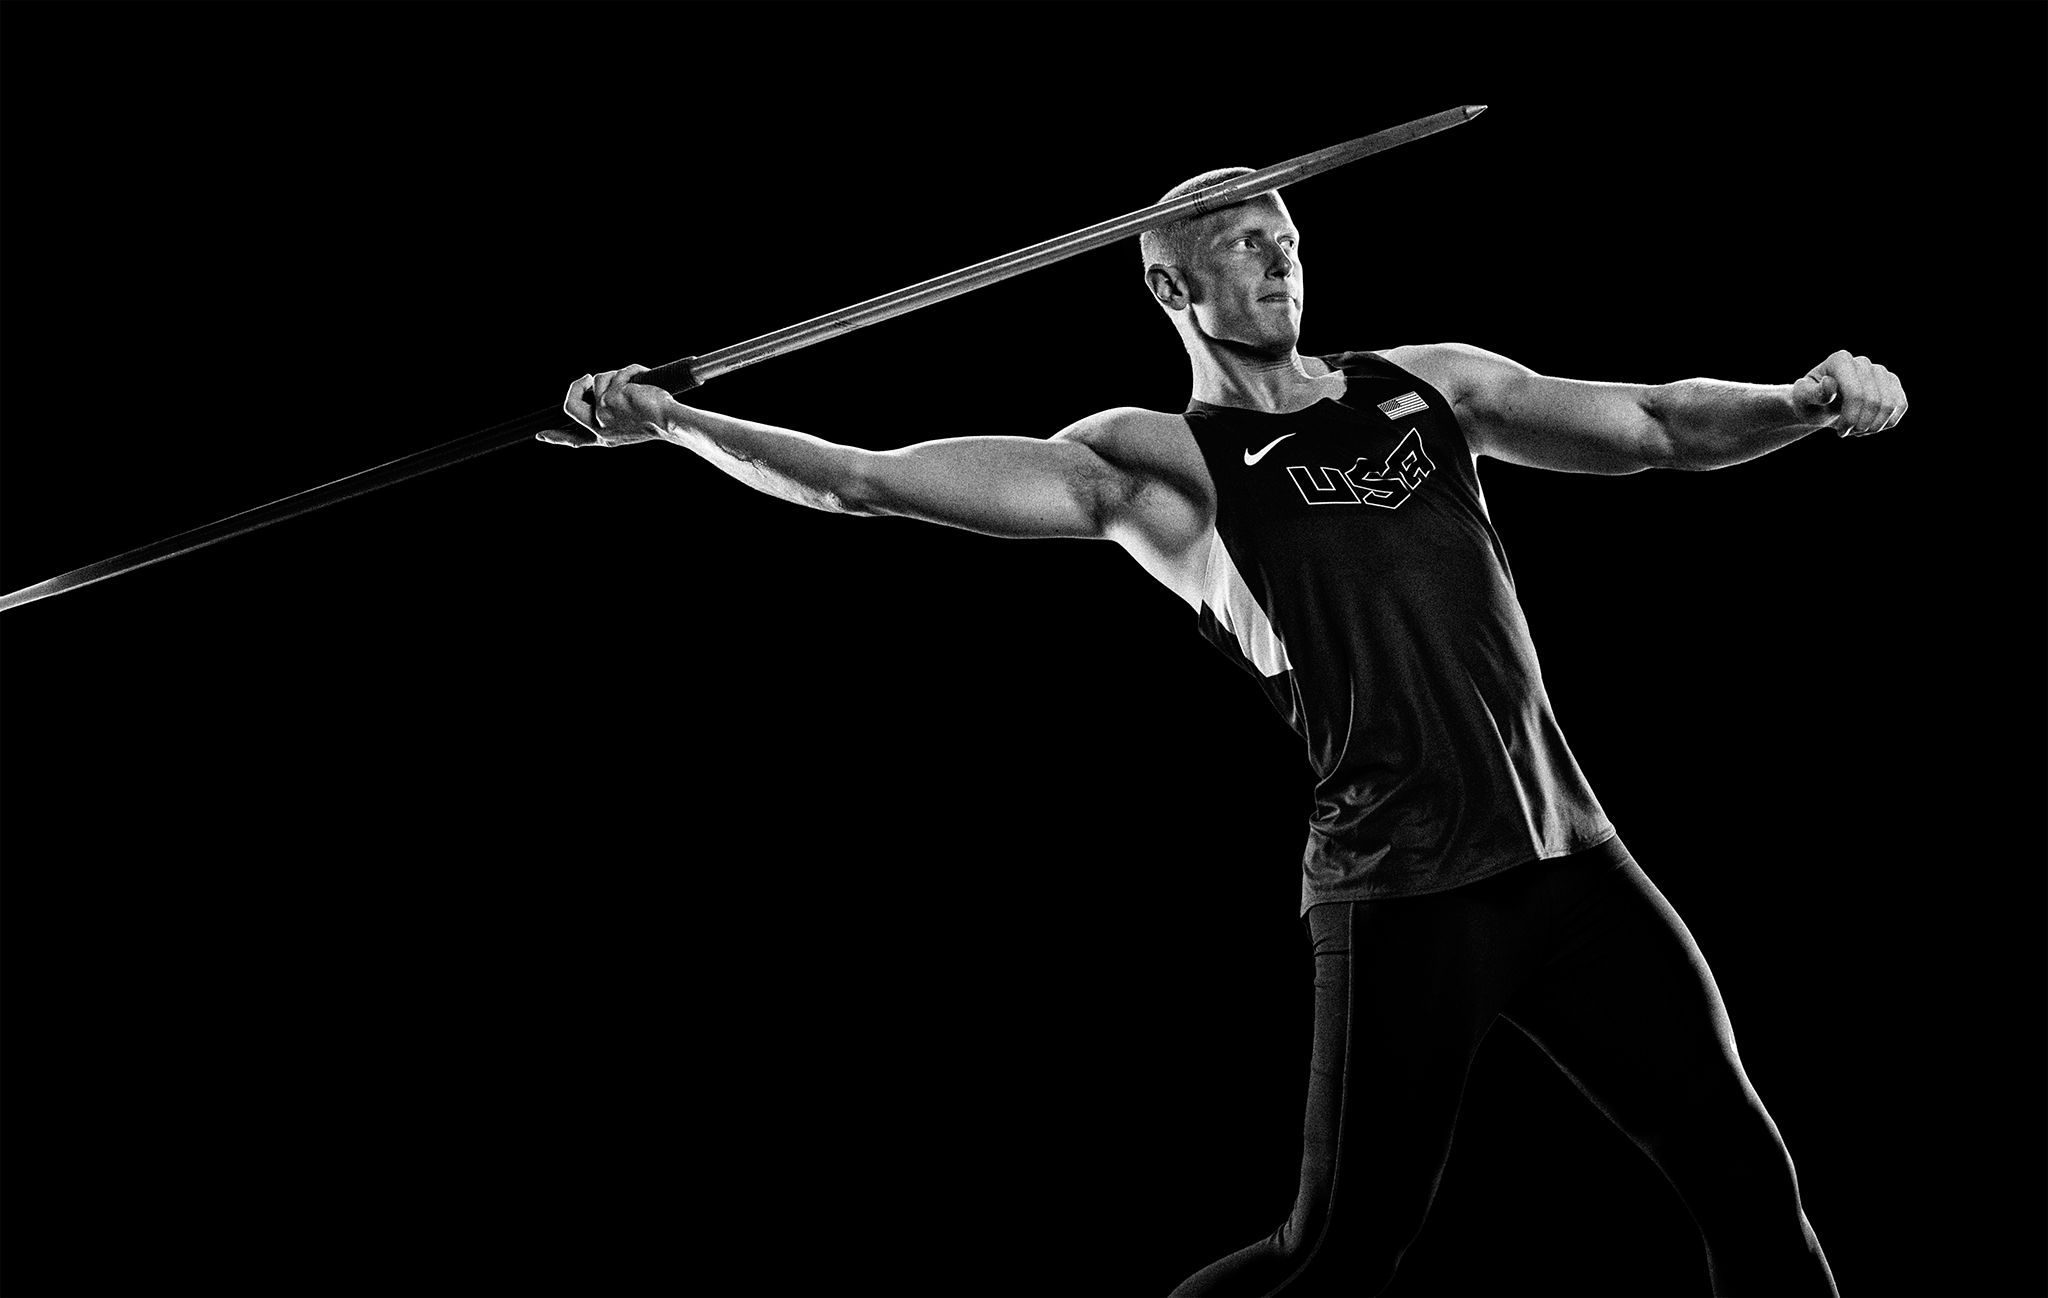 Olympic Javelin Thrower  Cyrus Hostetler | Zach Ancell Photography